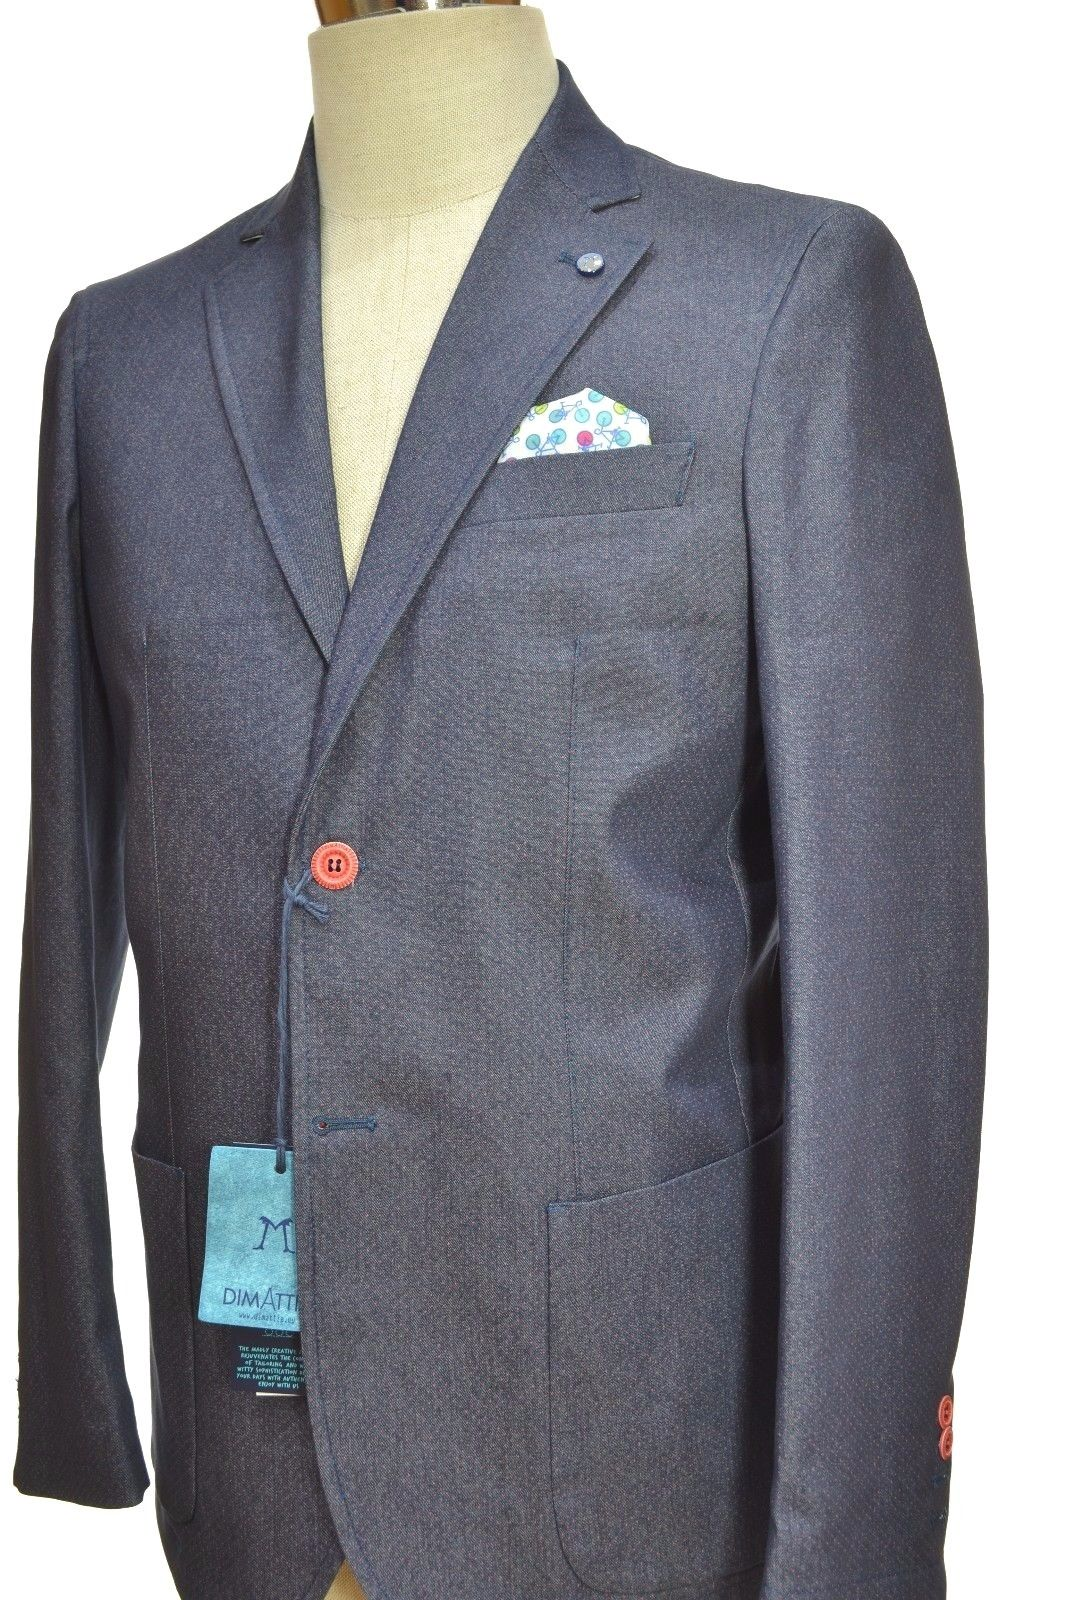 DIMATTIA GIACCA UOMO TG. 48 SLIM FIT PRINCE POIS MADE IN ITALY